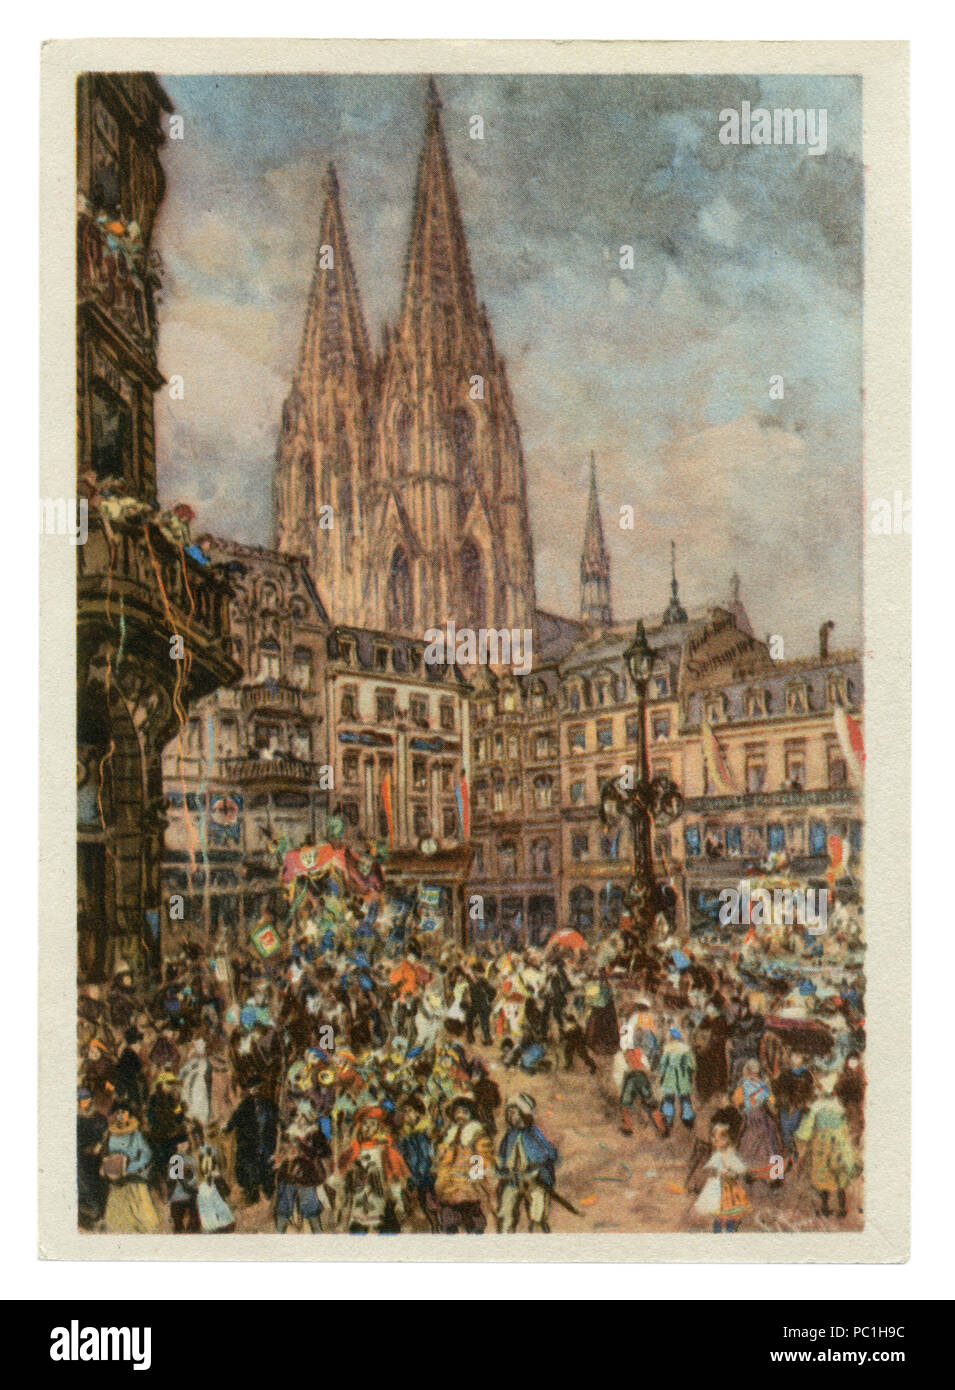 German historical postcard: Carnival in Cologne, a view of the square and Wallraf-Richartz, Cologne Cathedral, 20 February 1939. Germany, Third Reich Stock Photo